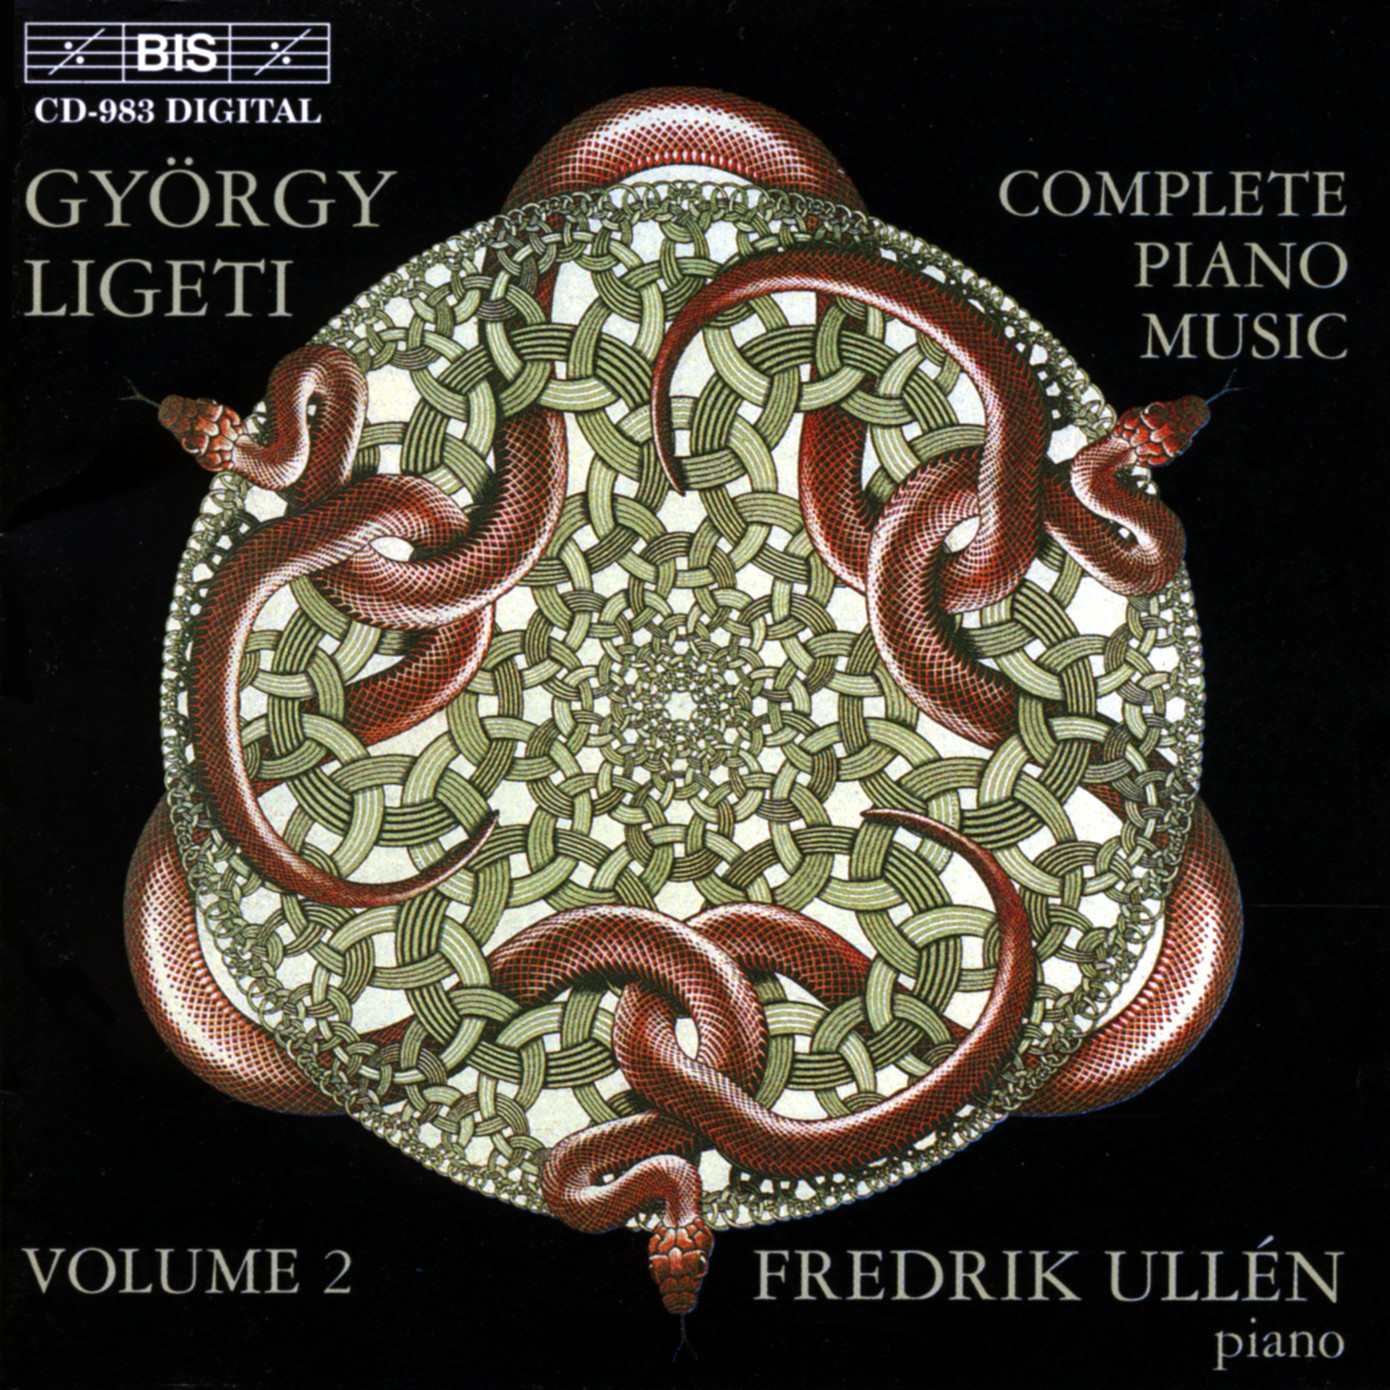 György Ligeti - Fredrik Ullén - The Complete Piano Music Volume 1